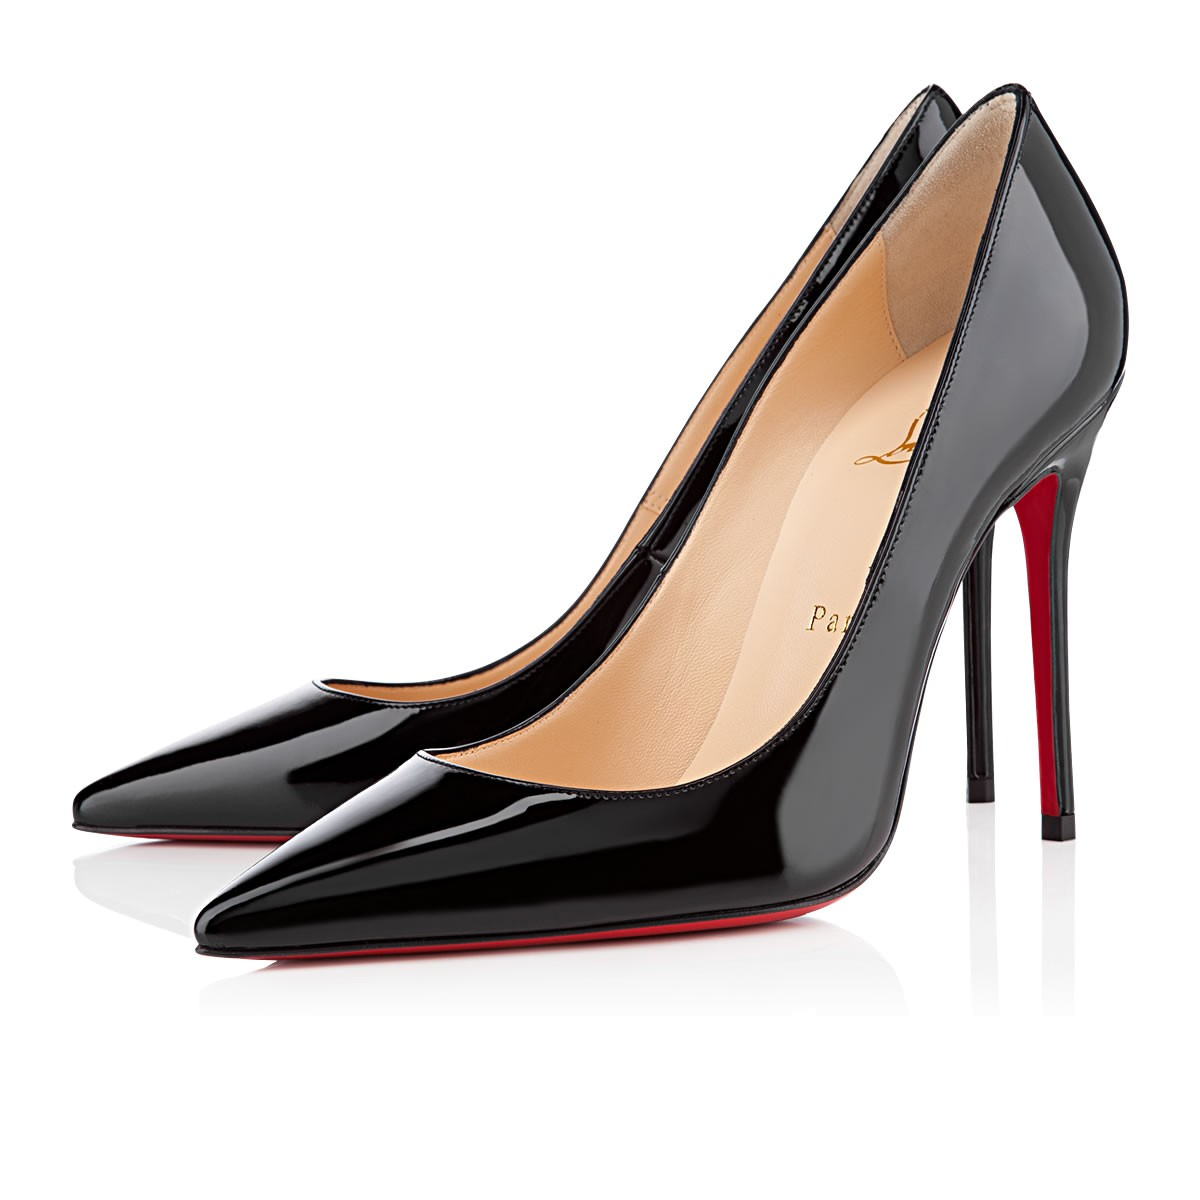 84a67d4d9f4 Kate 100 Black Patent Leather - Women Shoes - Christian Louboutin